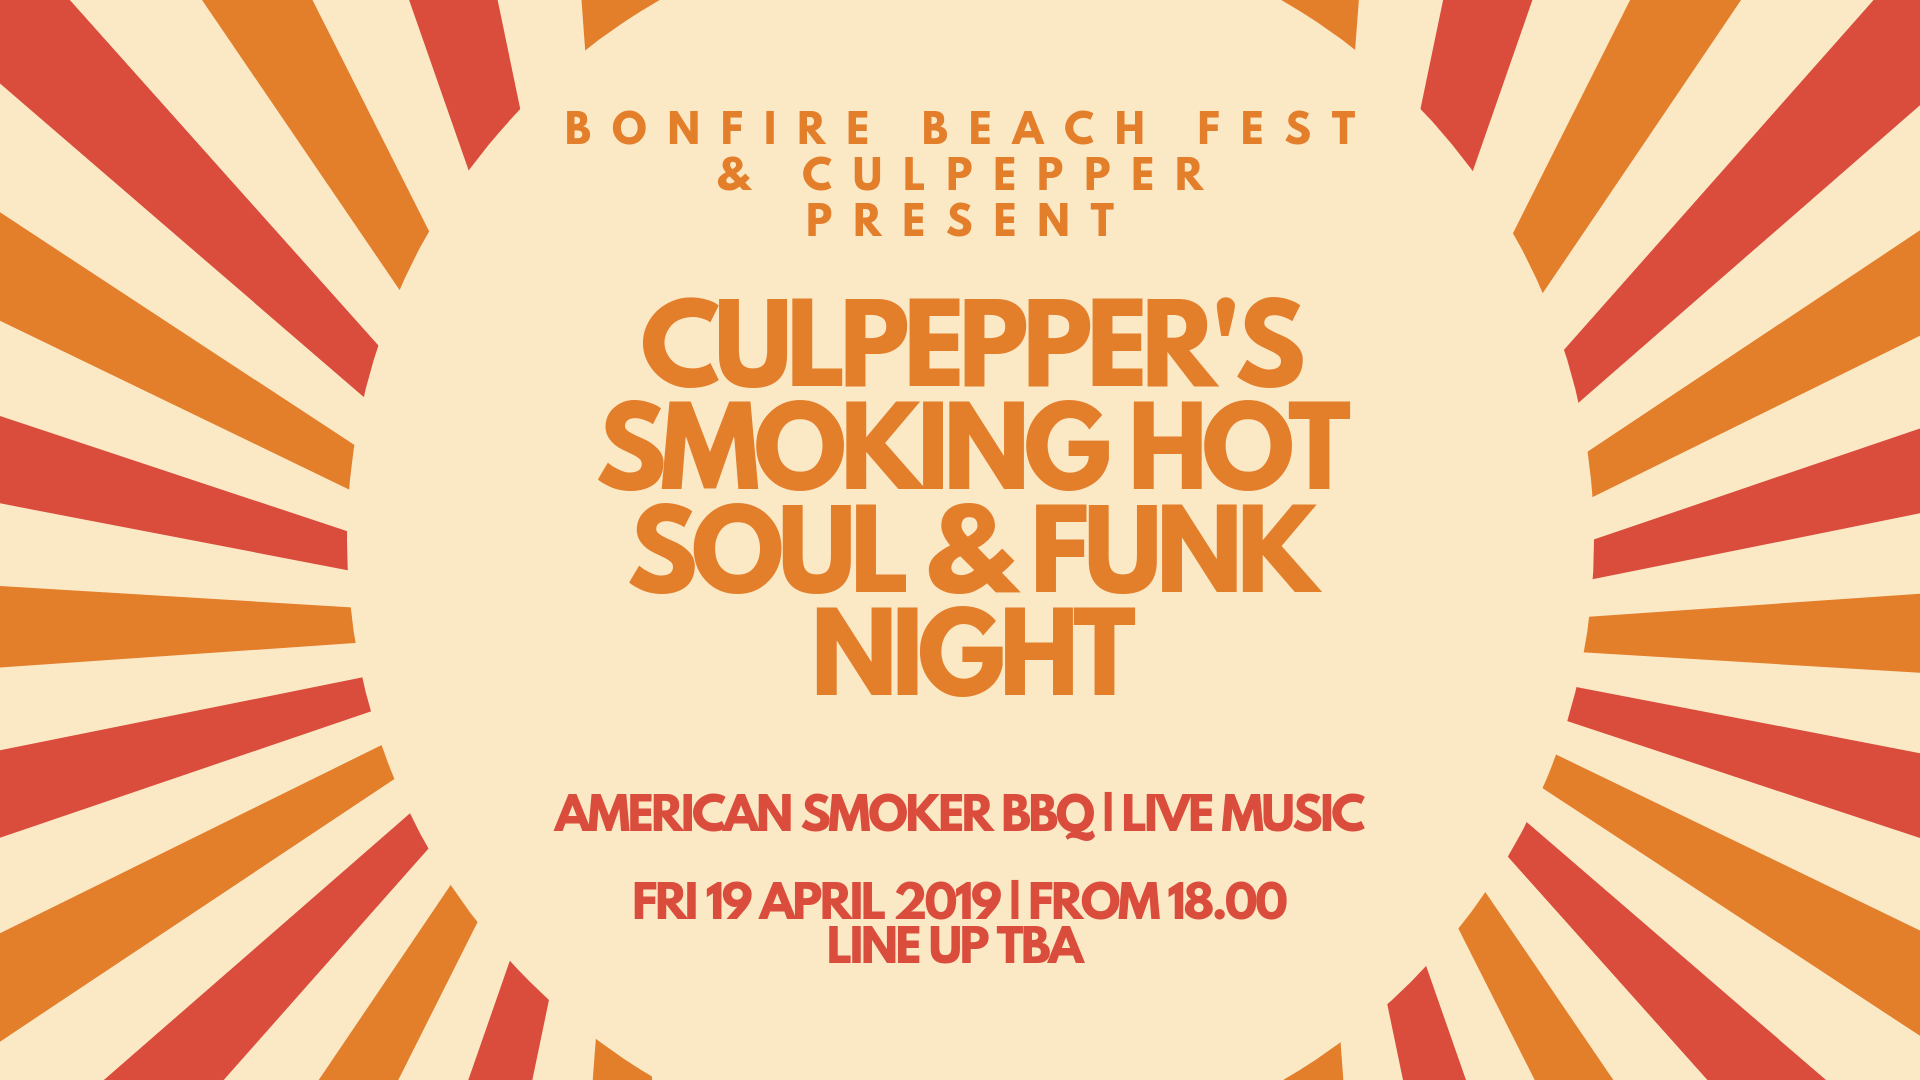 FB bonfire beach 2019-19 april.png